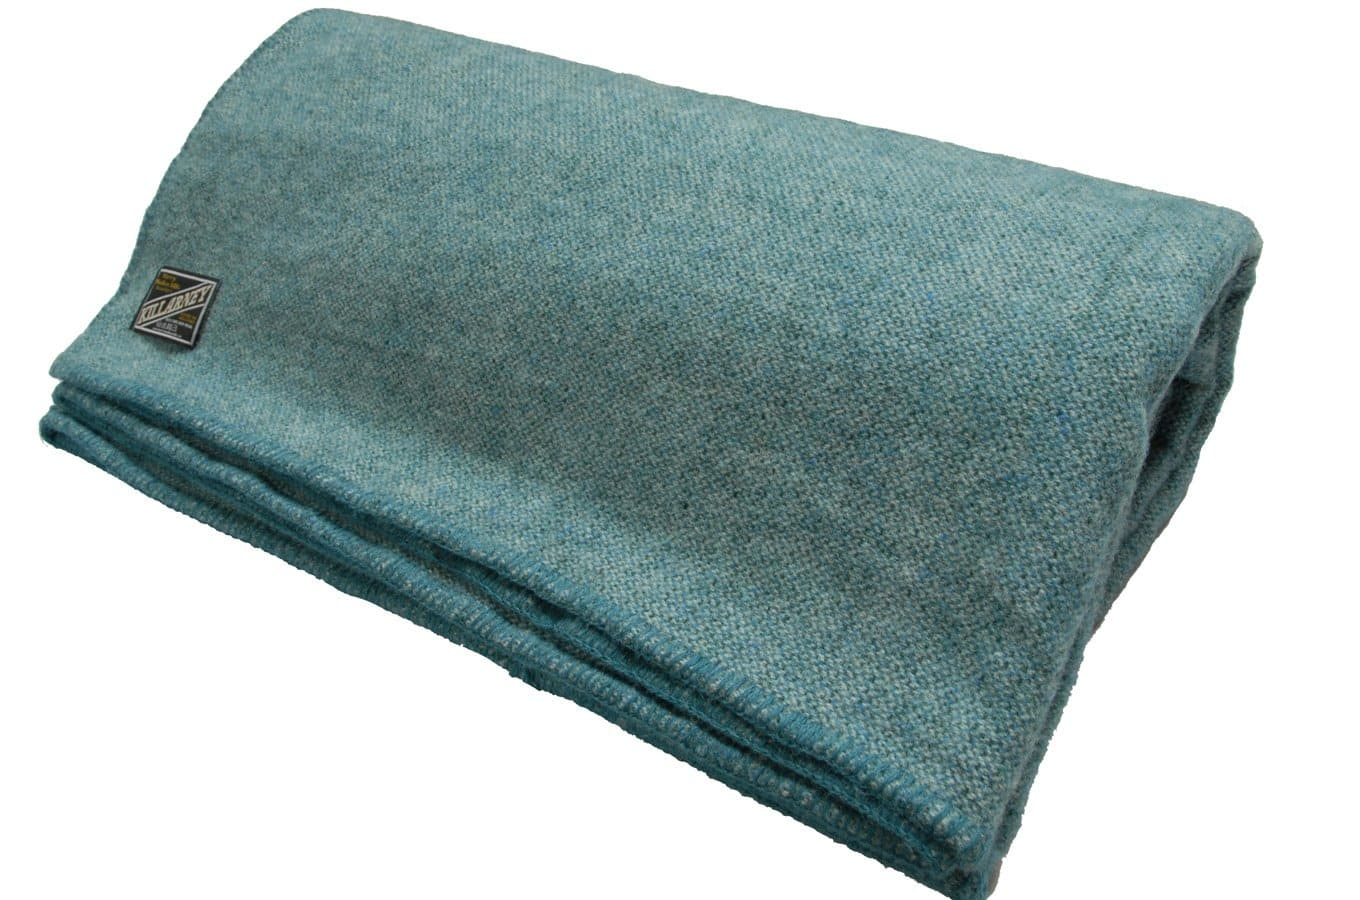 "King/Queen Size 90"" Wide x 108"" Long Lambswool Soft Blanket Wool Comforter Woven in Co. Kerry, Ireland by Kerry Woollen Mills"